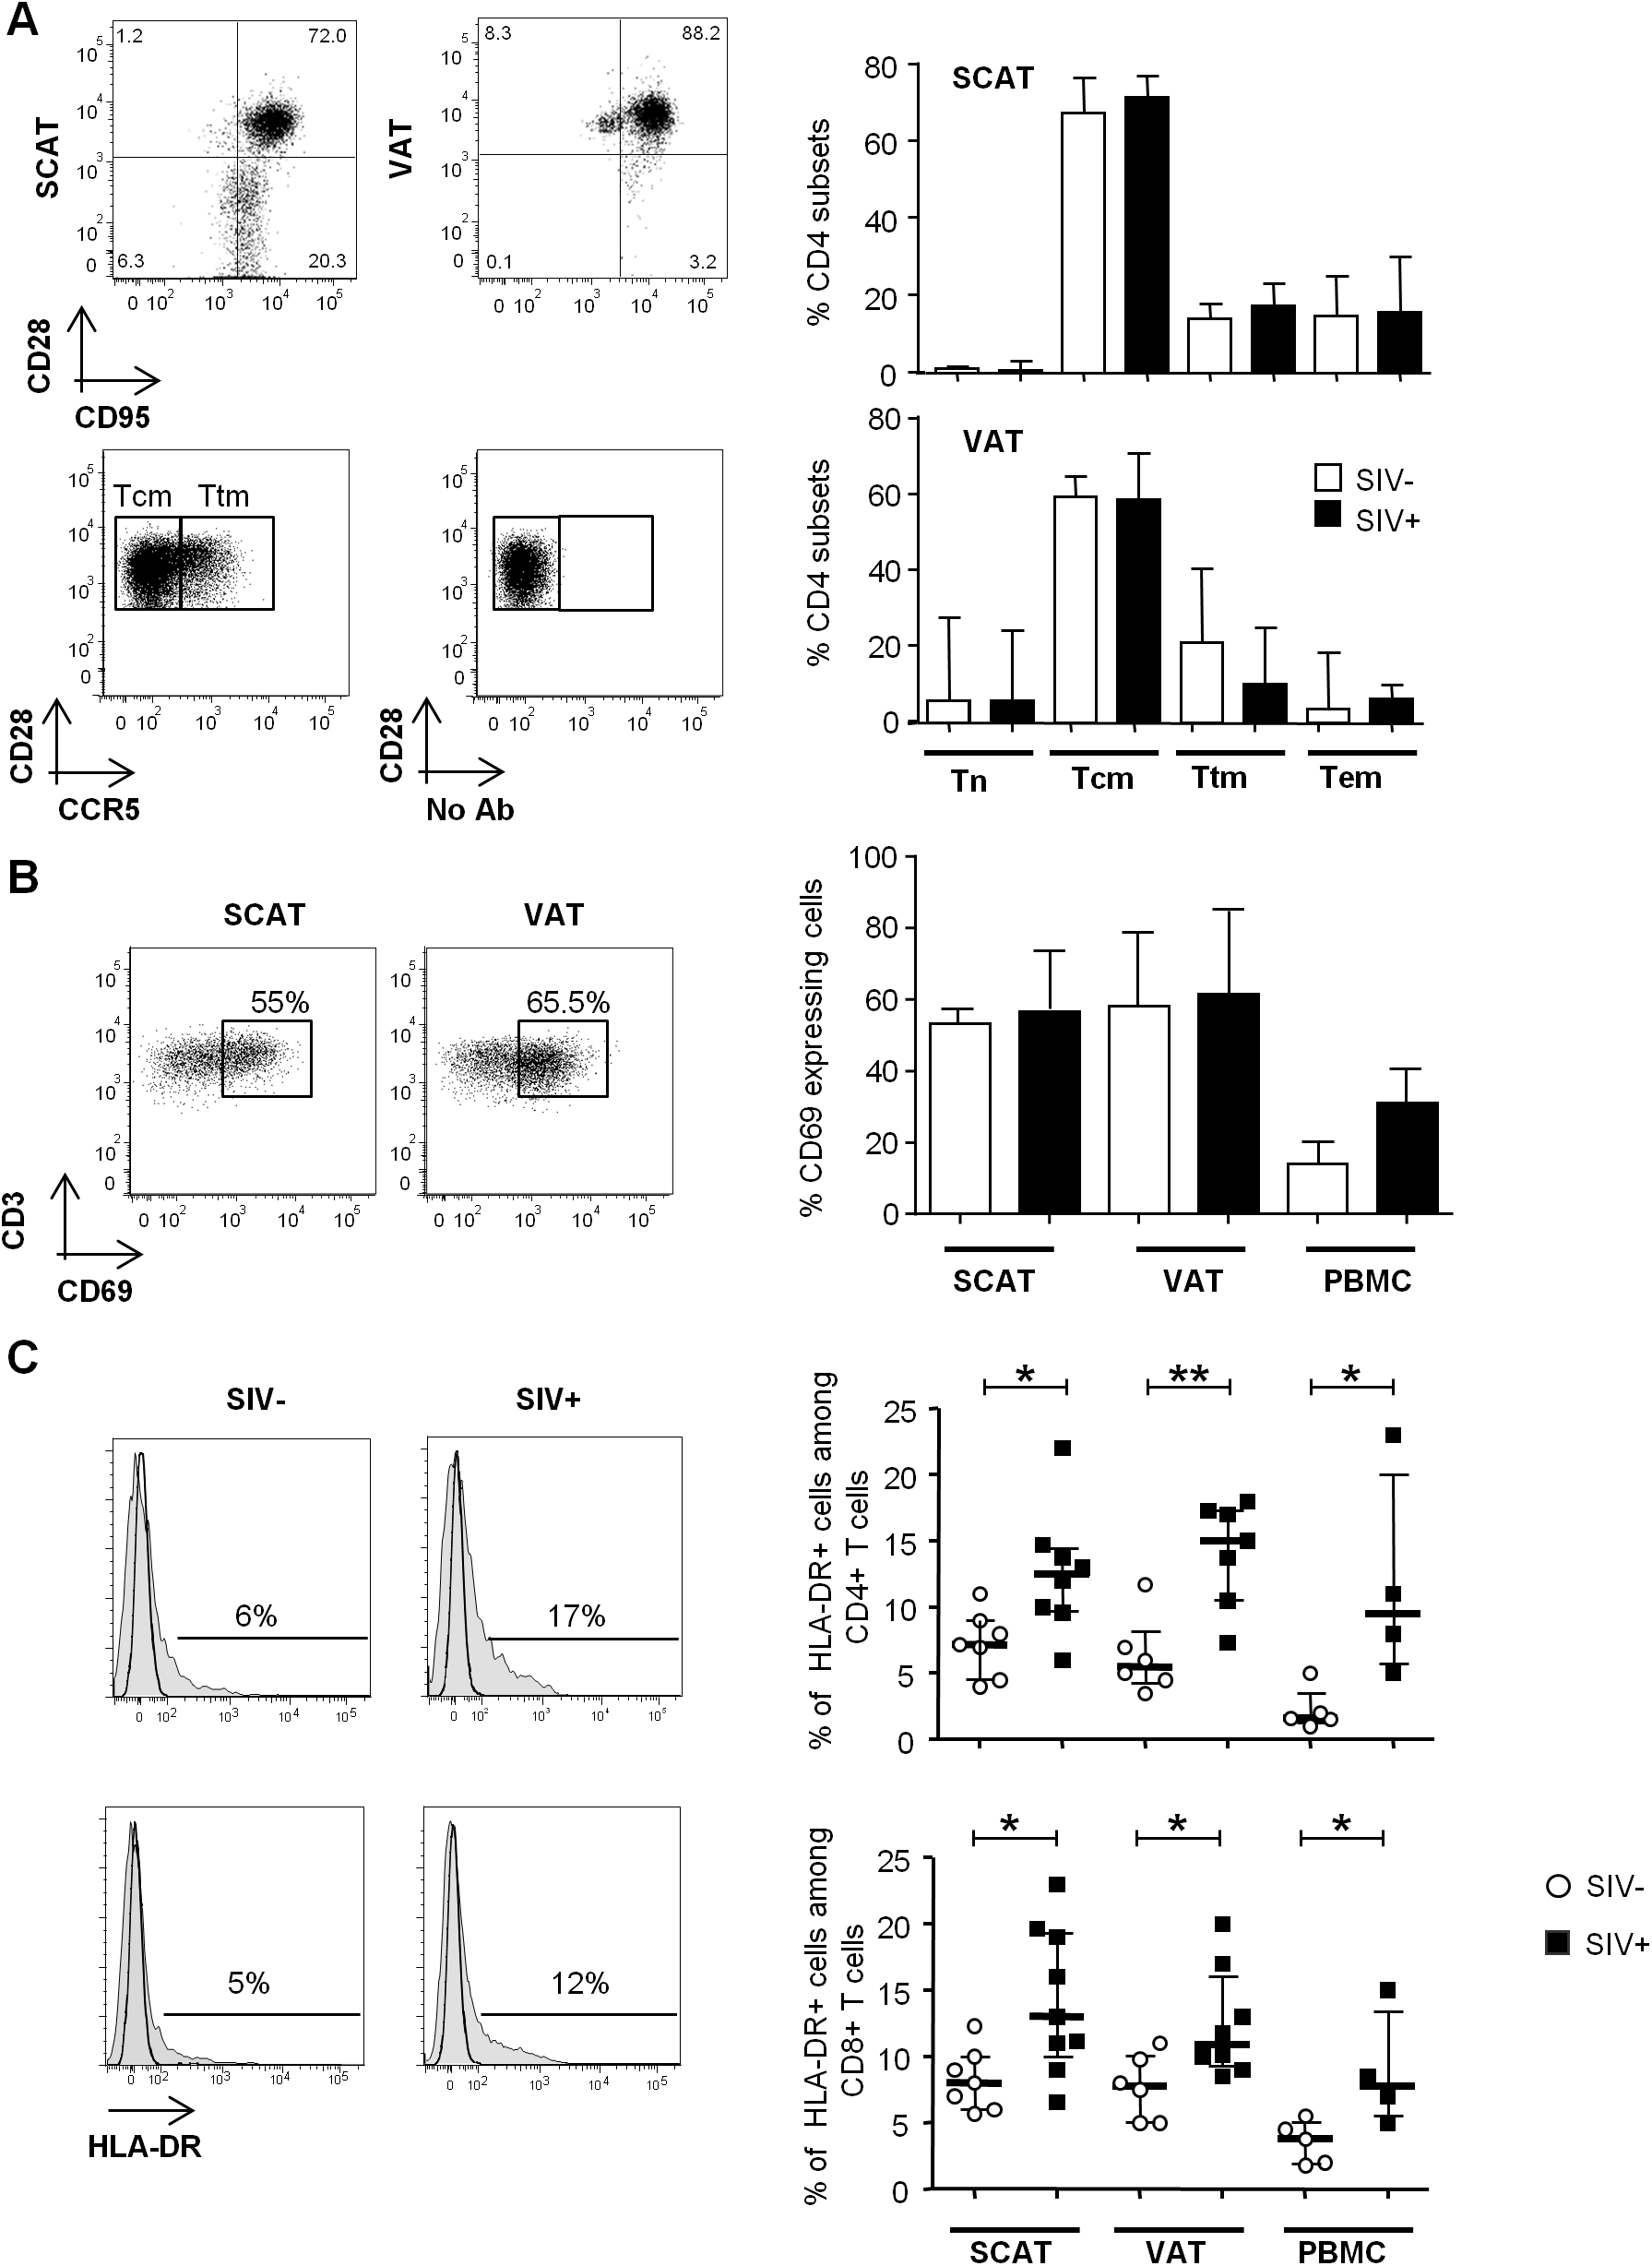 The influence of SIV infection on T cell differentiation and activation status.